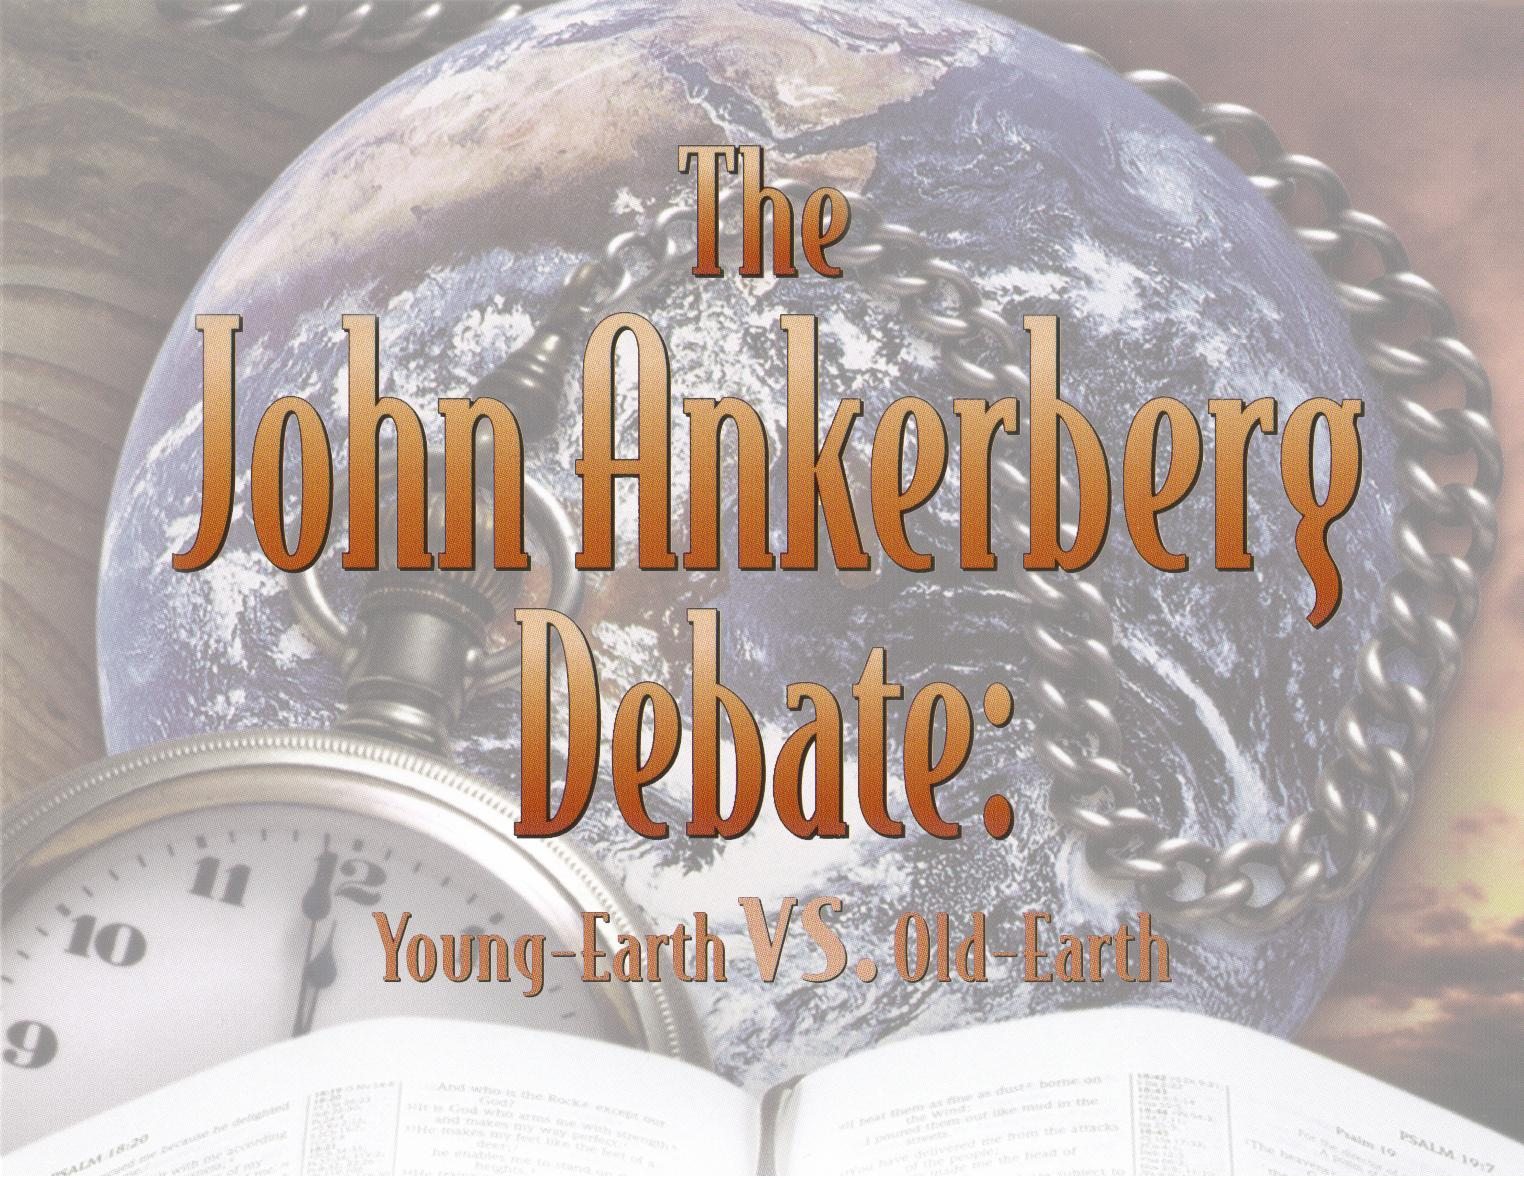 The John Ankerberg Debate: Young-Earth vs. Old-Earth